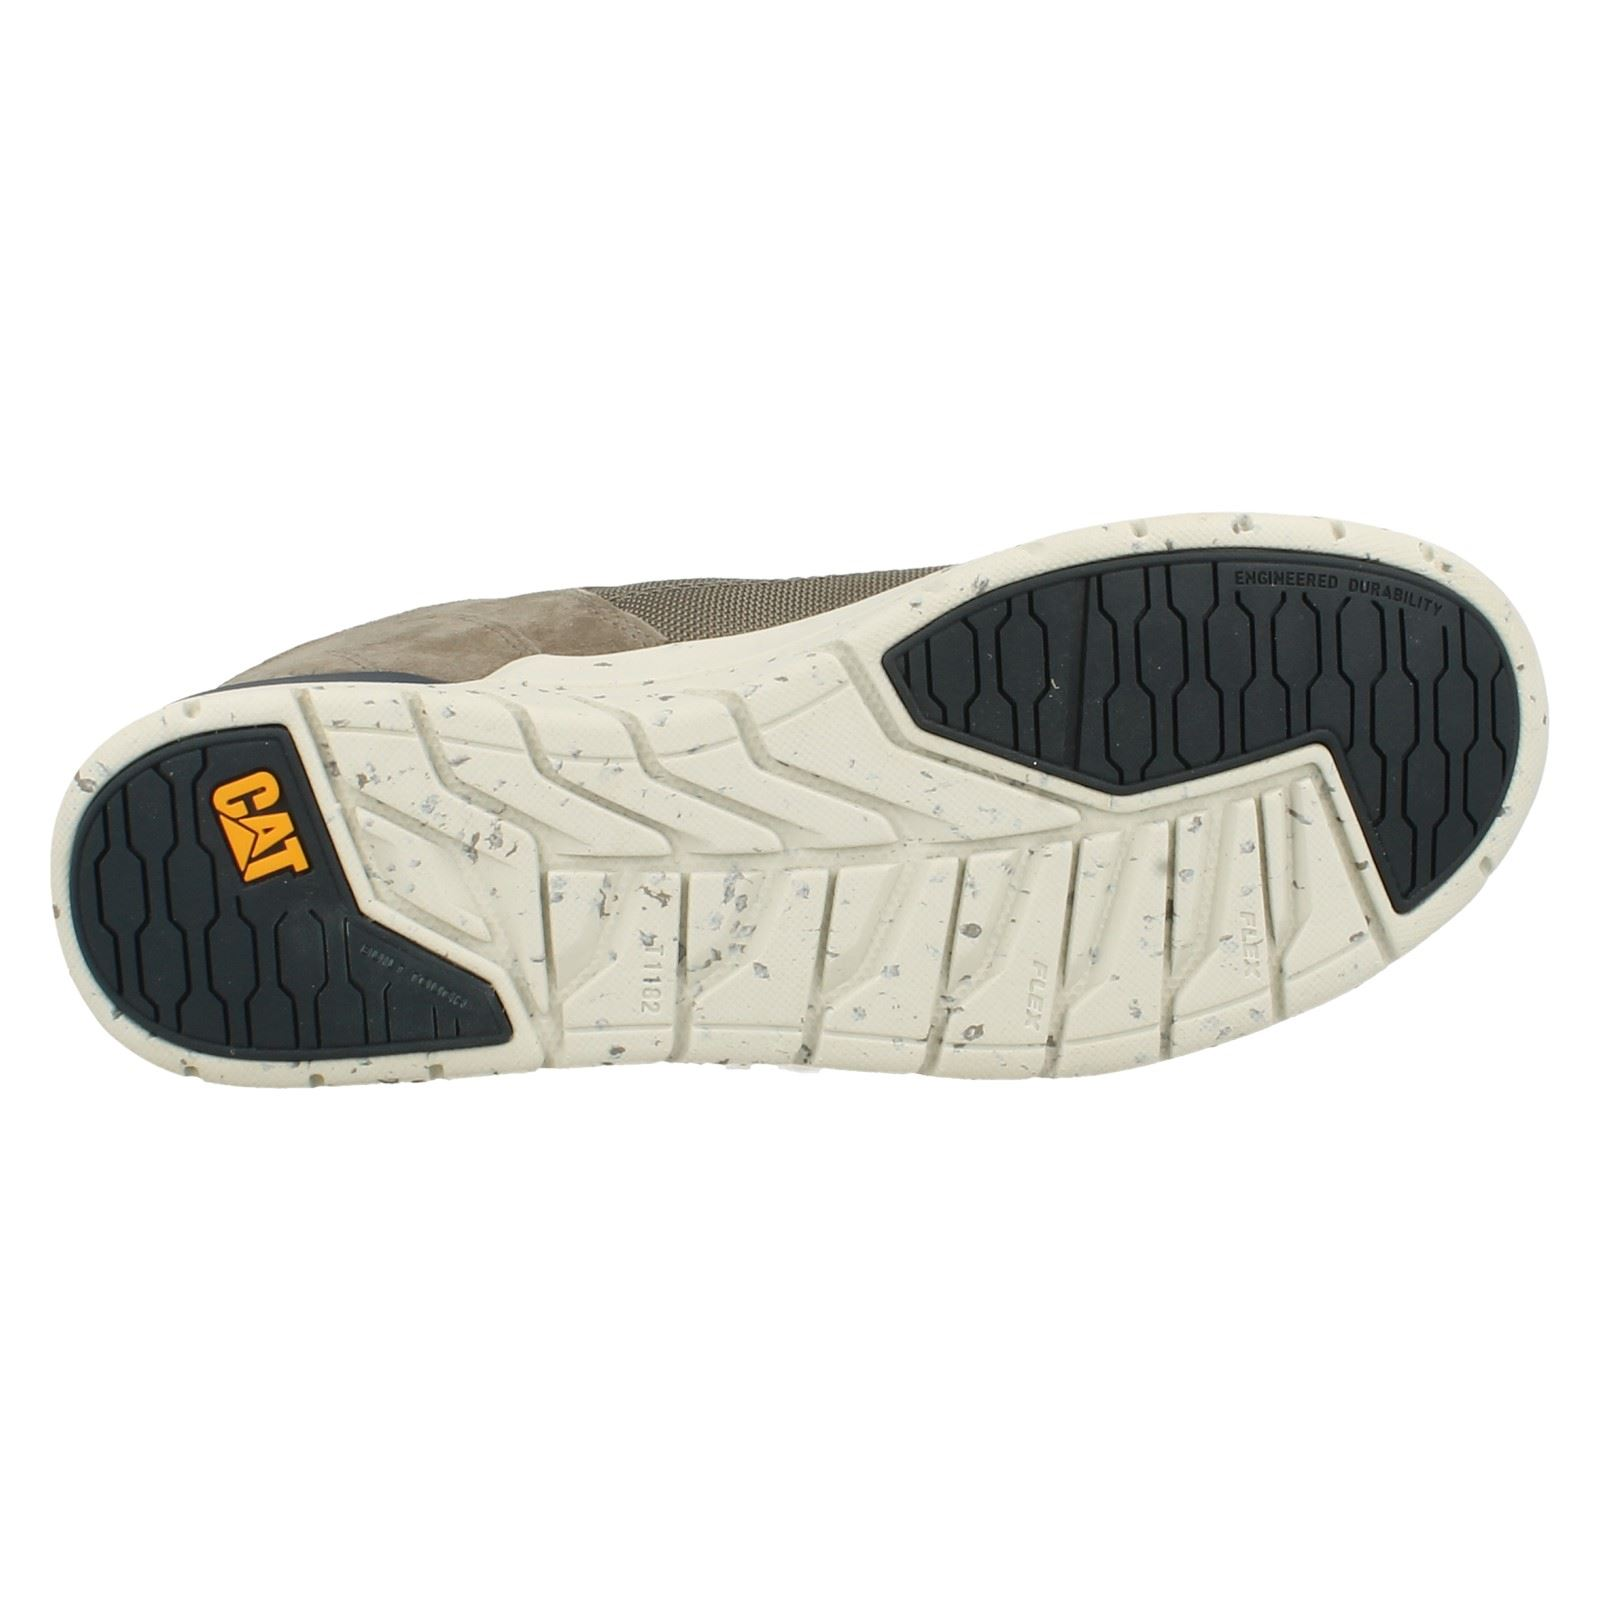 Mens Caterpillar Lace Up Trainers Style - Indent